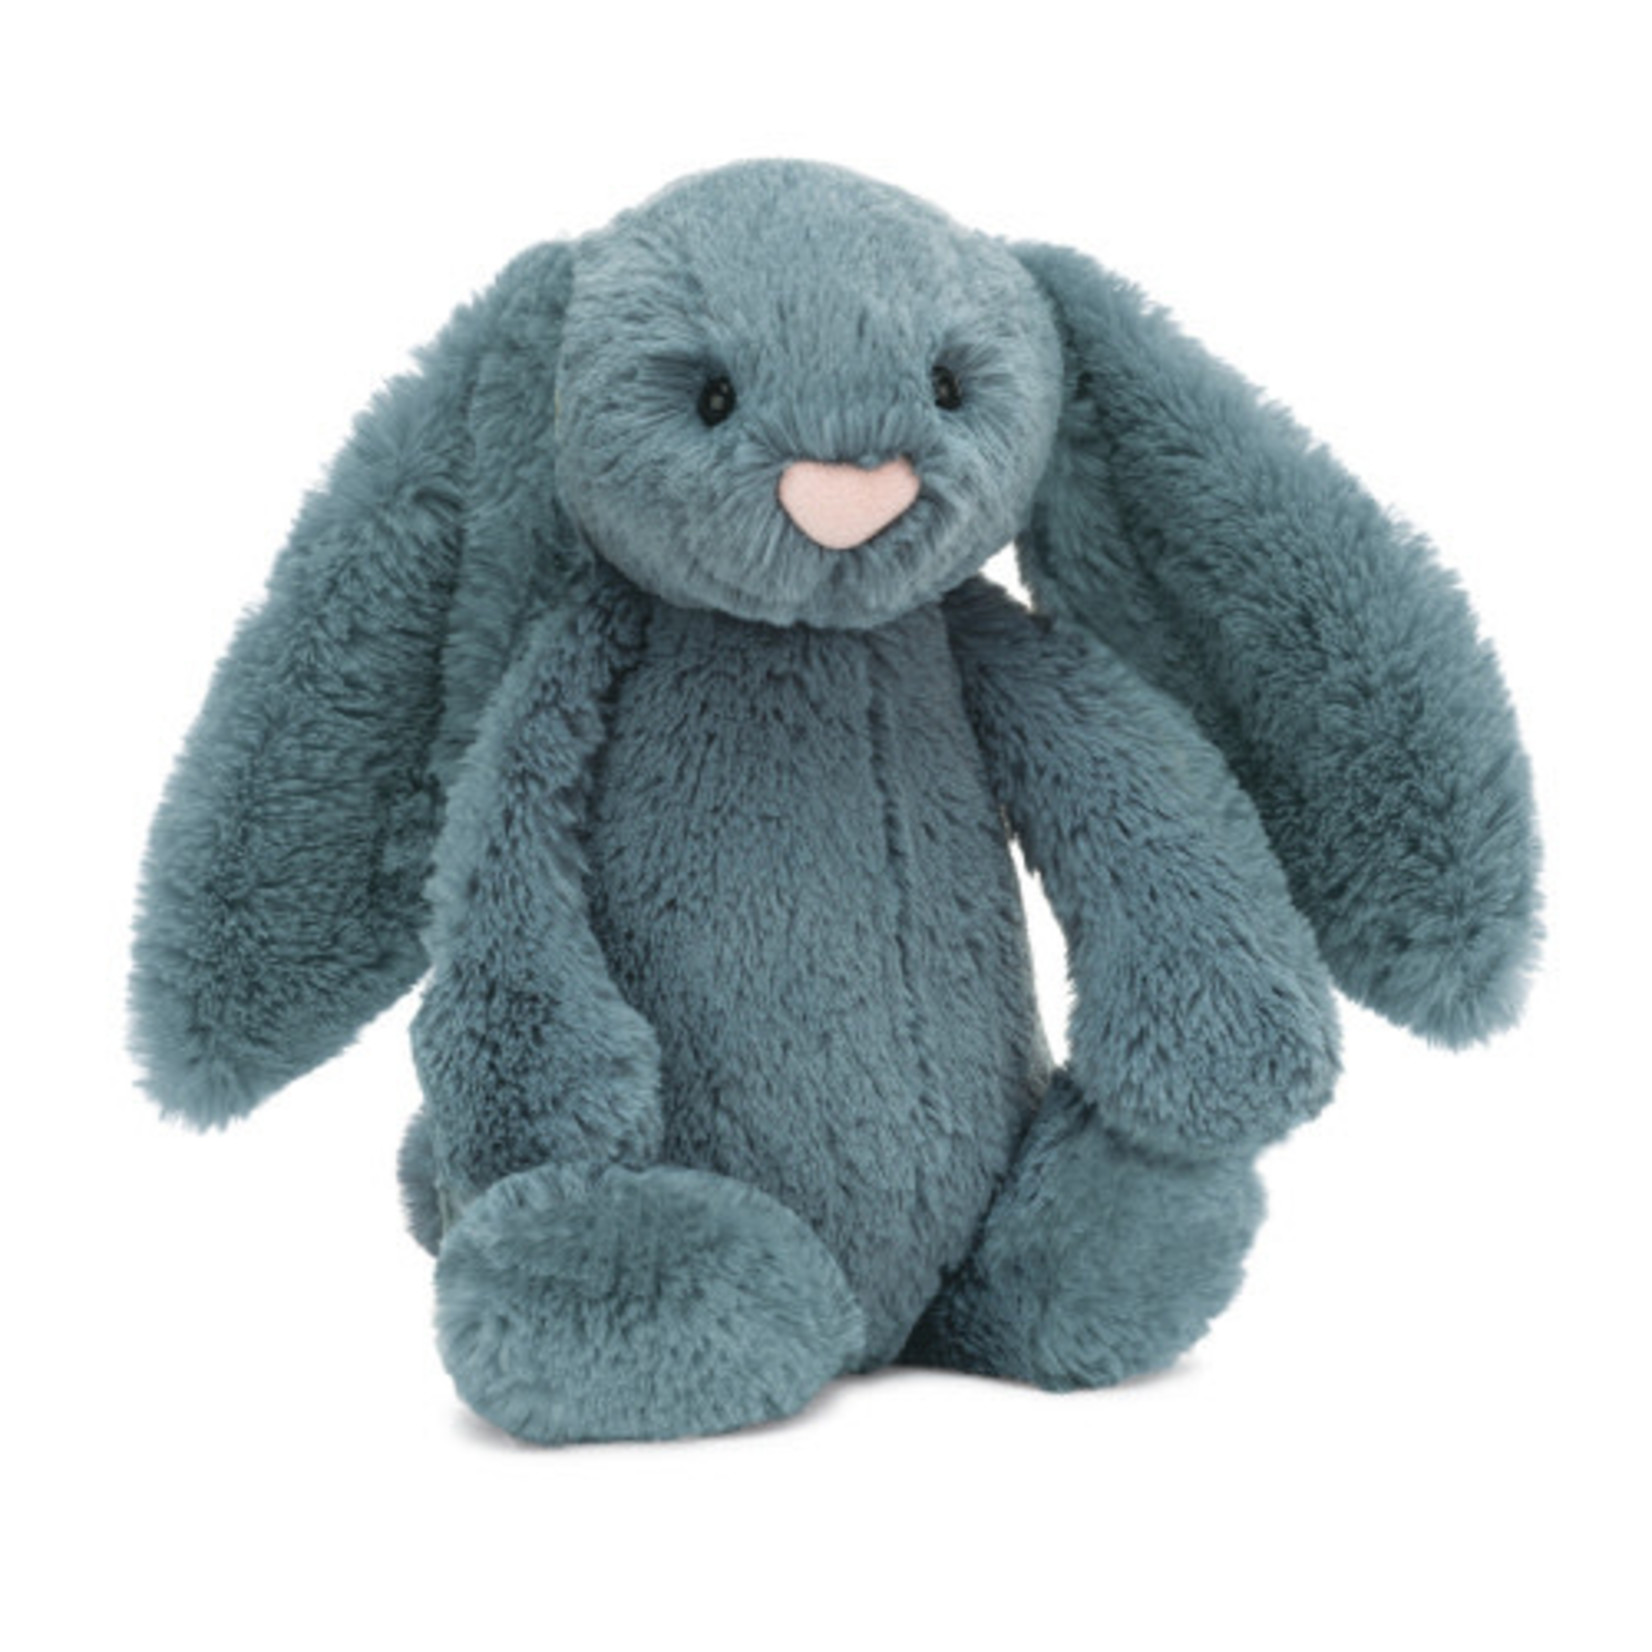 JELLYCAT SMALL BASHFUL  DUSKY BUNNY BLUE